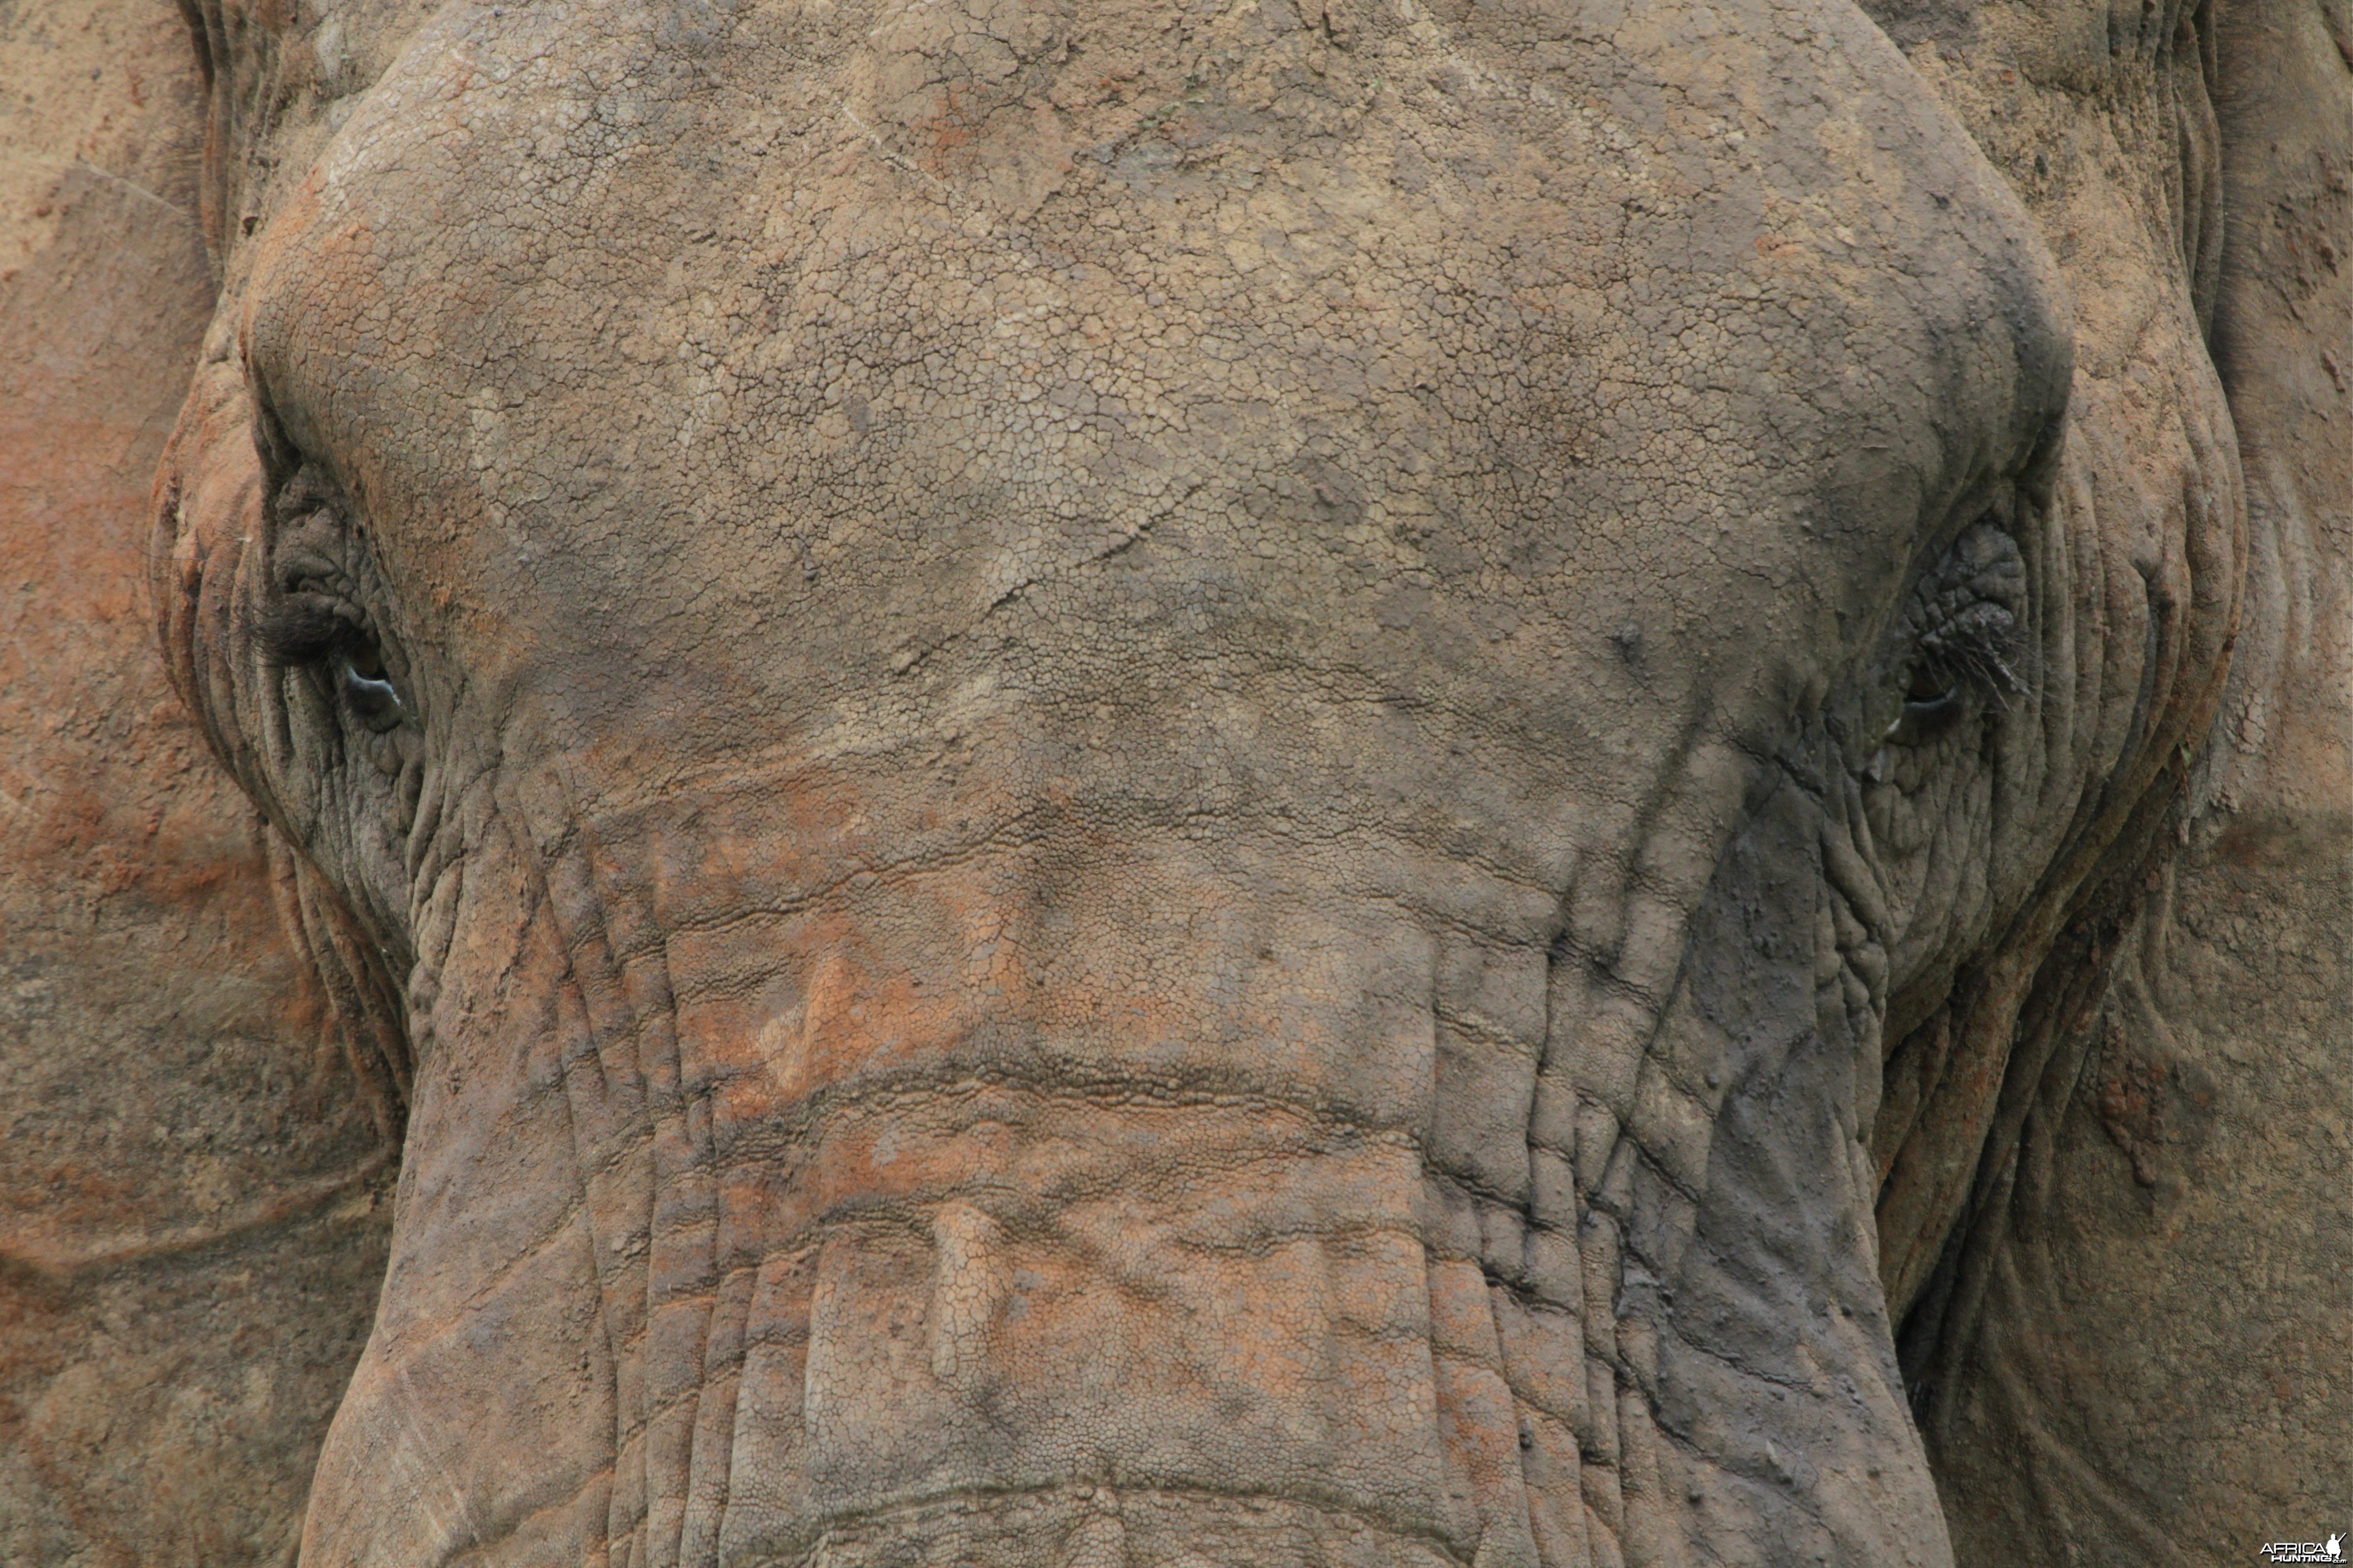 Head... Elephant in Tanzania